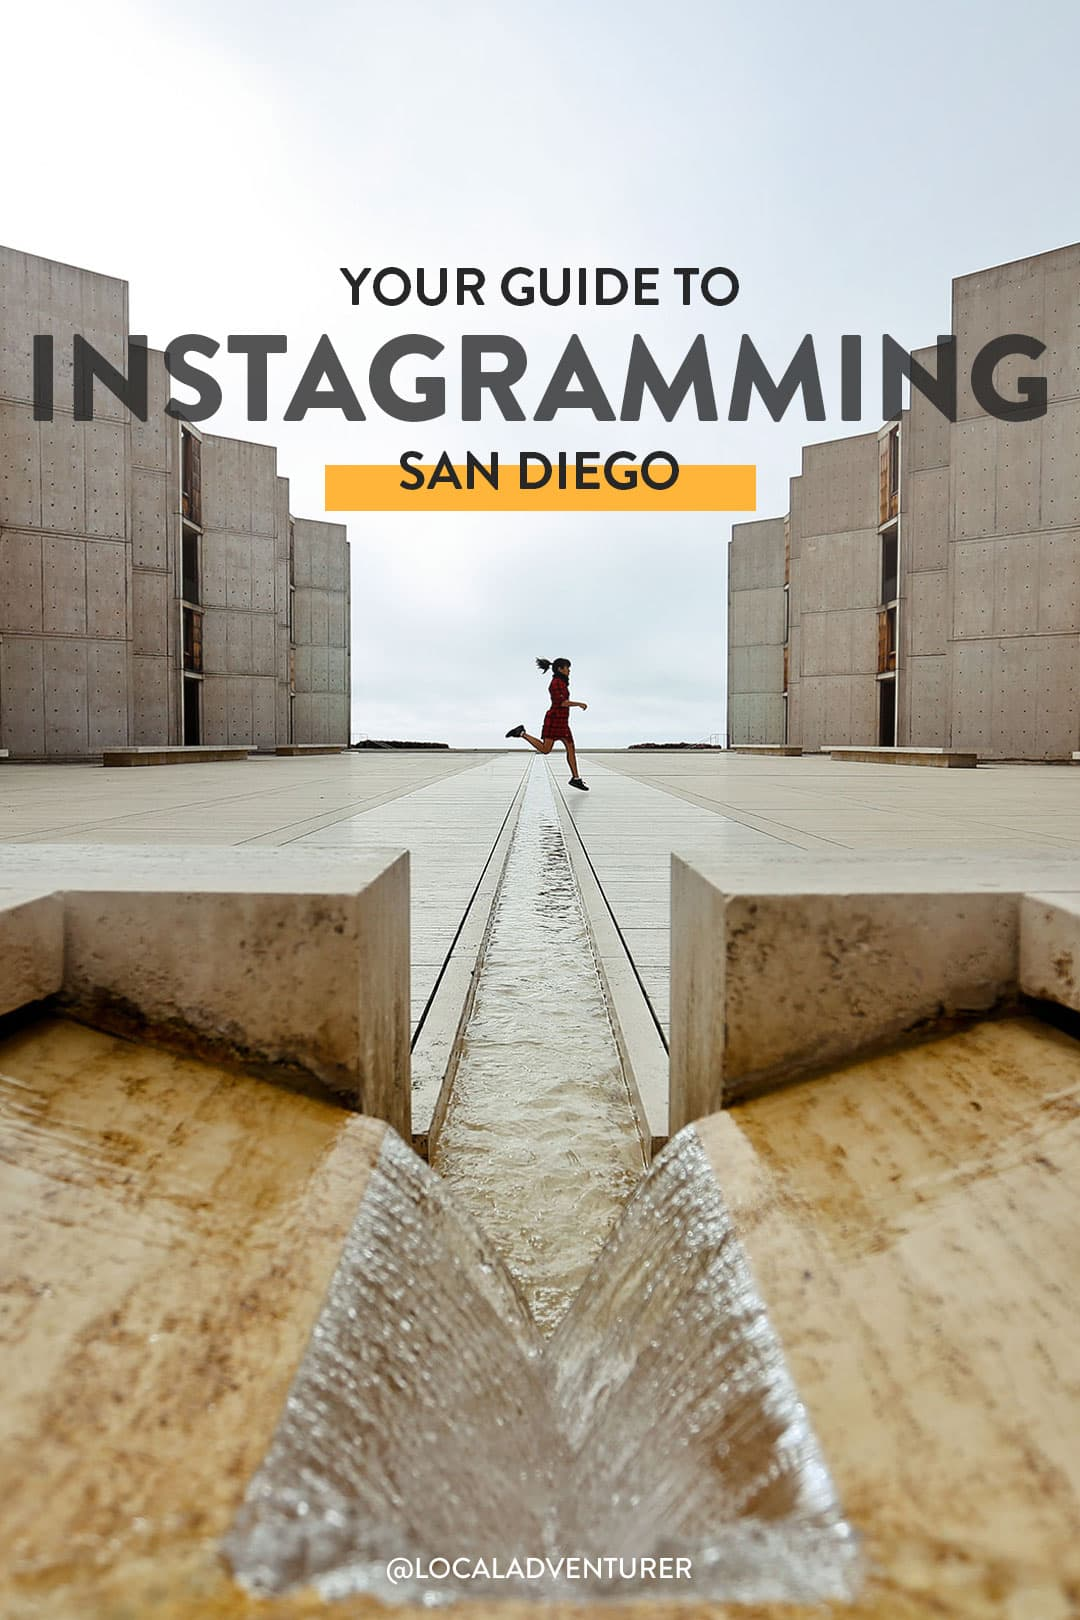 The Most Instagrammable Places in San Diego